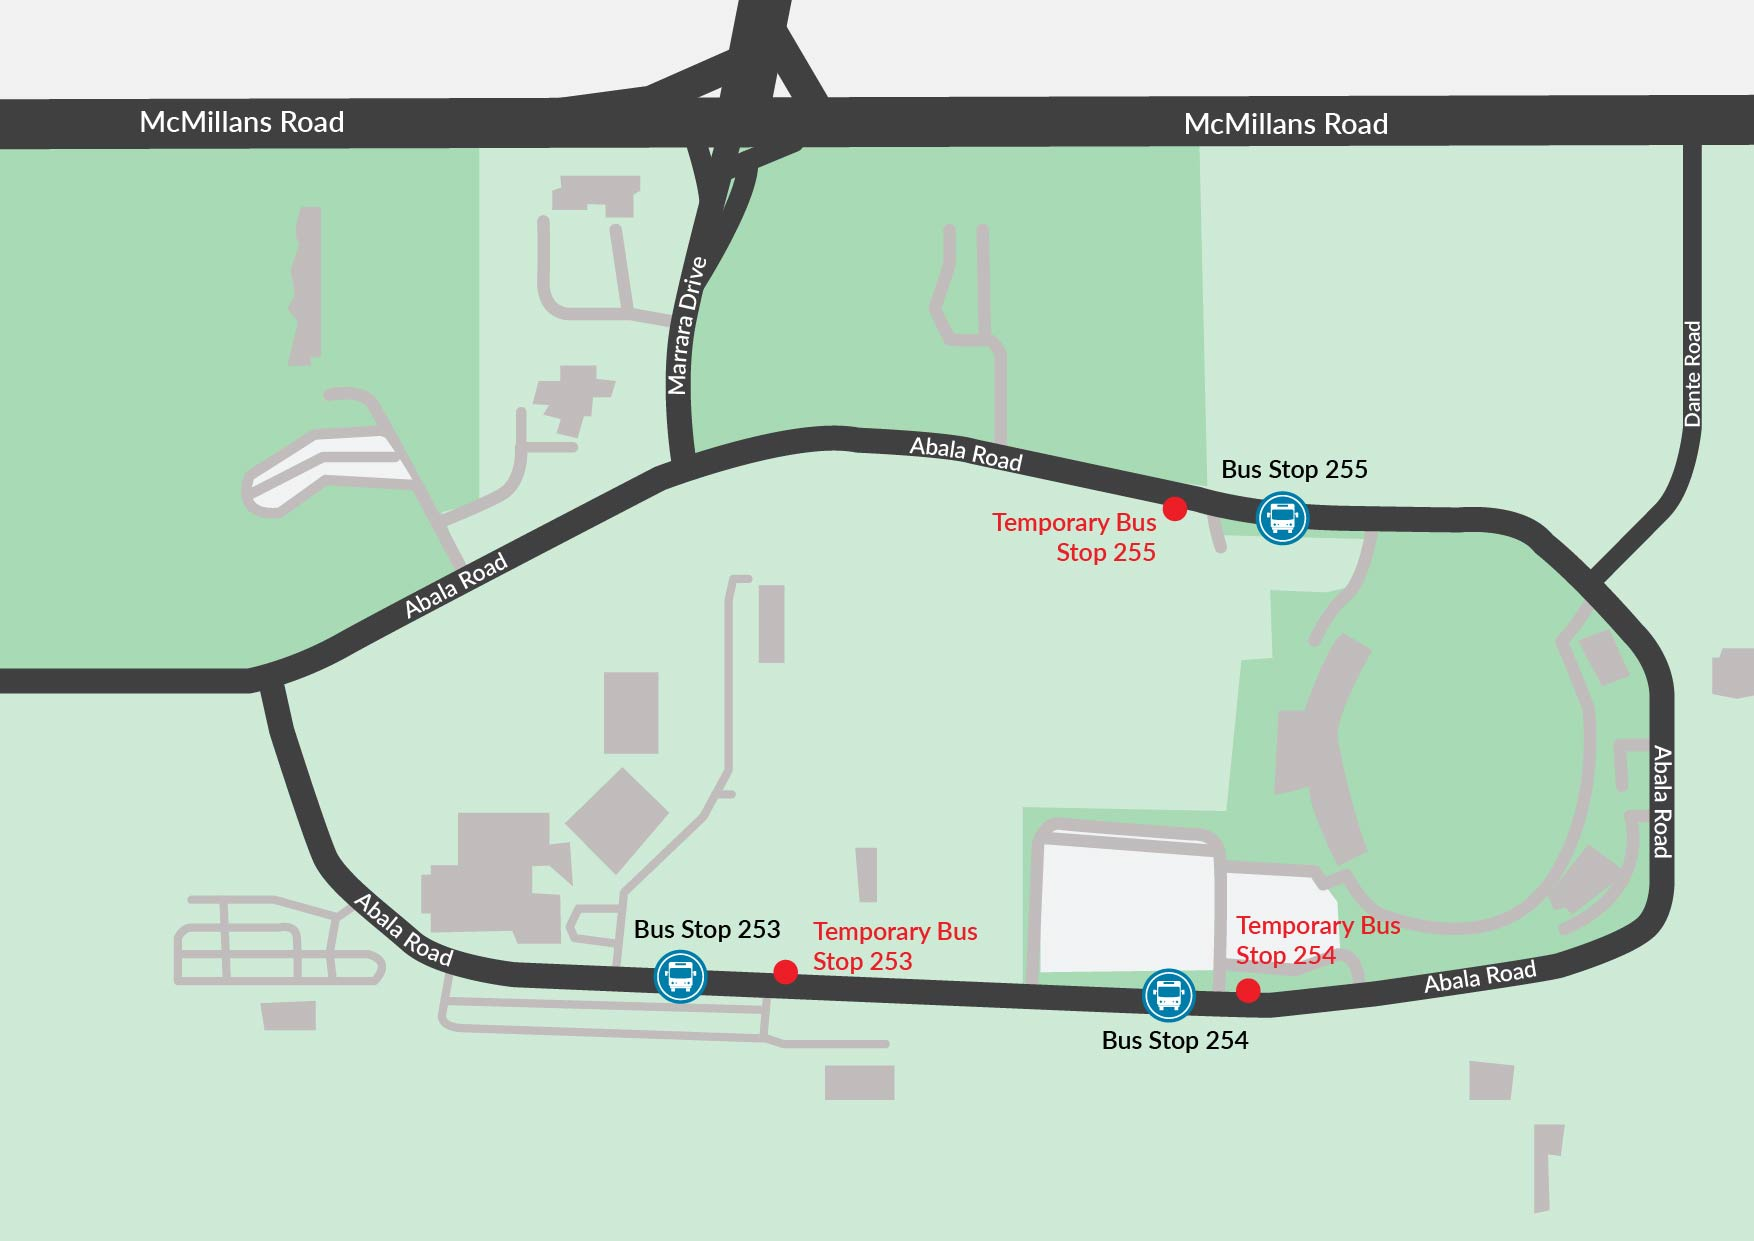 Map of Abala Road and bus stop upgrades